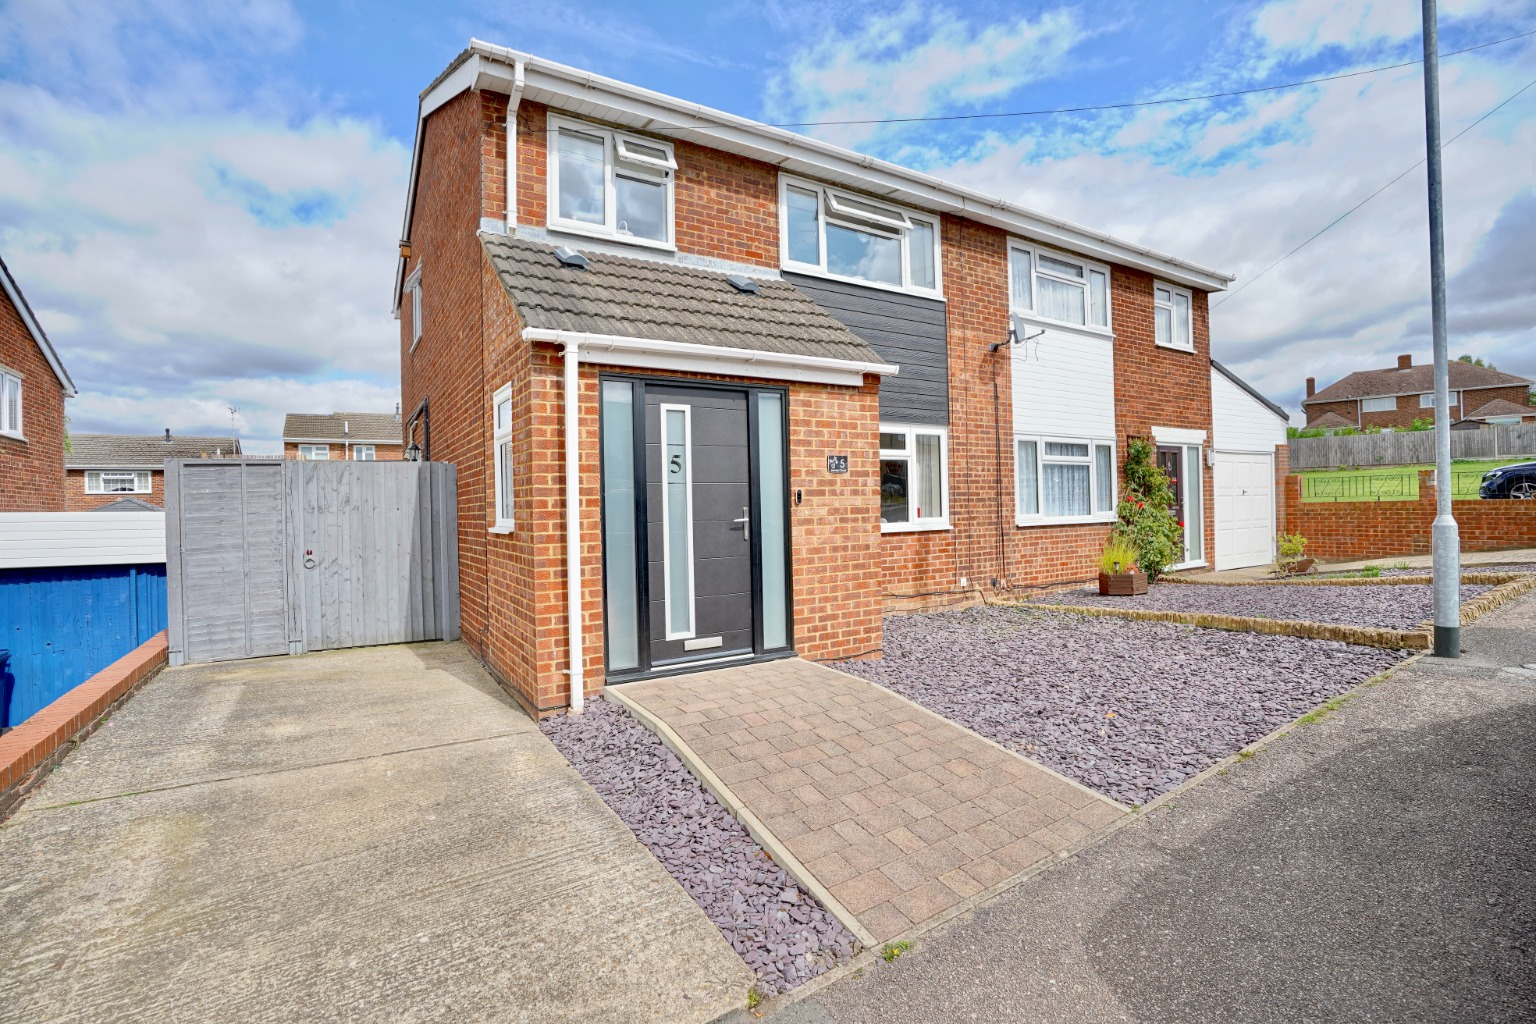 3 bed semi-detached house for sale in James Court, St. Neots - Property Image 1